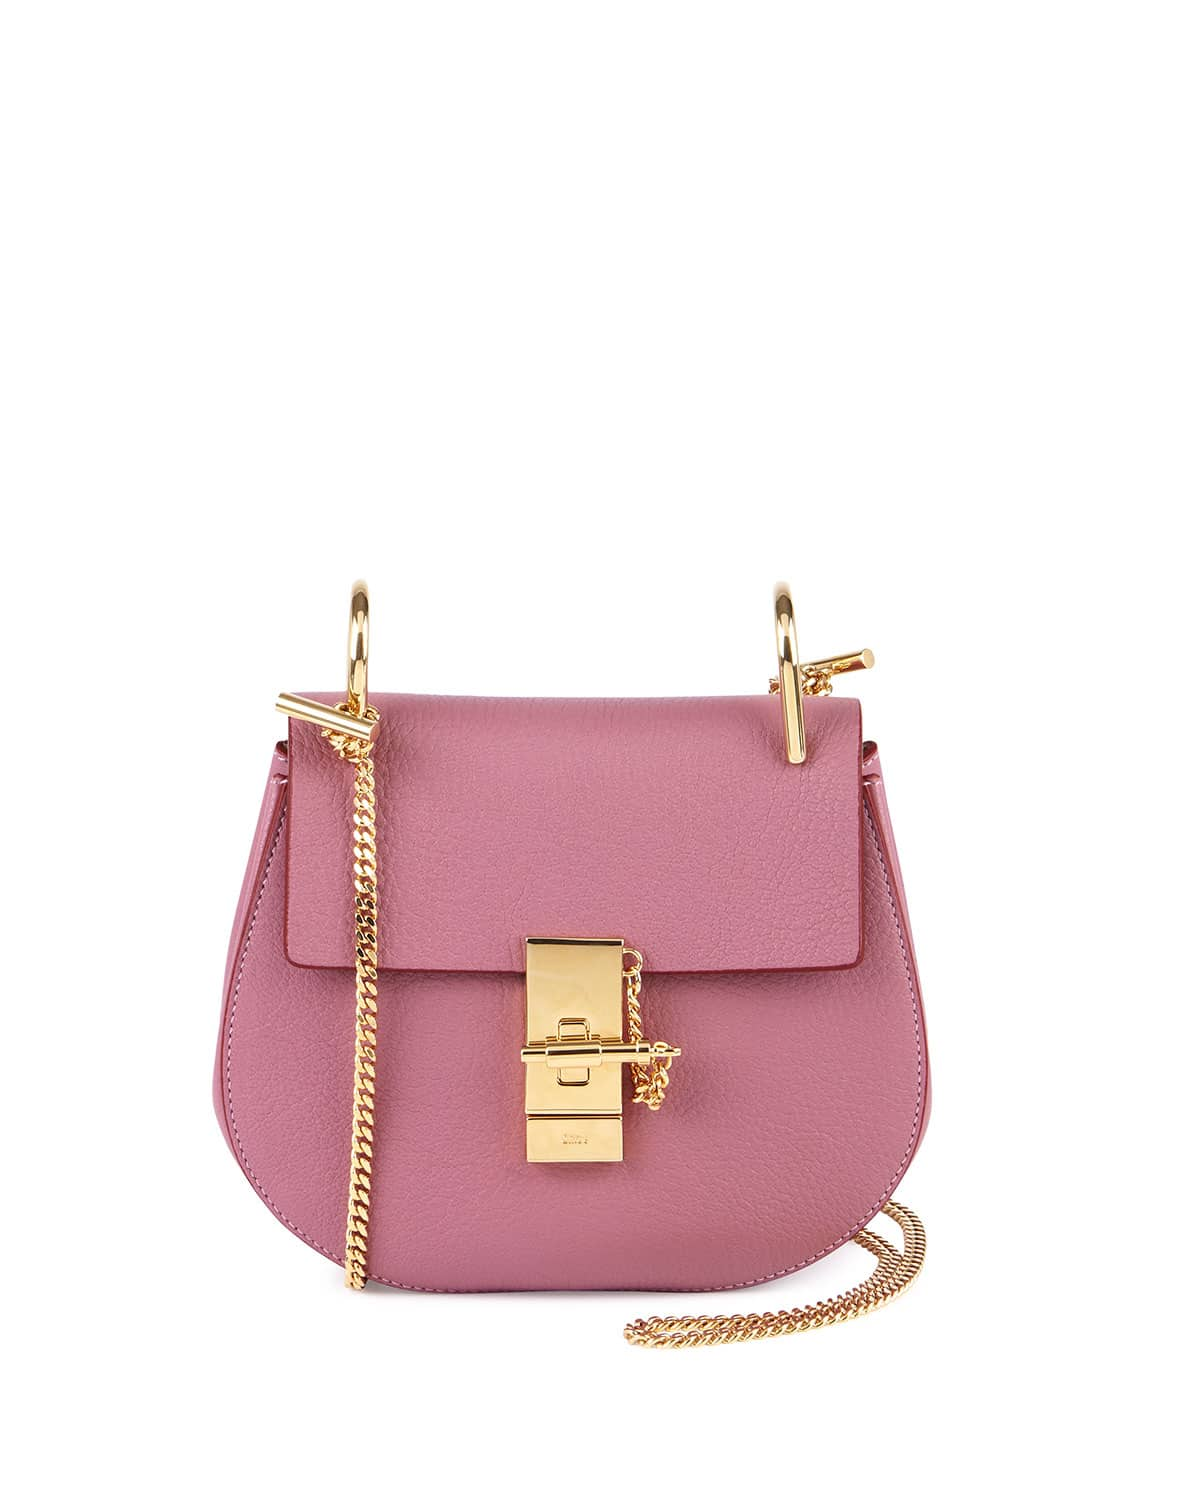 Chloe Spring/Summer 2015 Bag Collection Featuring the Faye